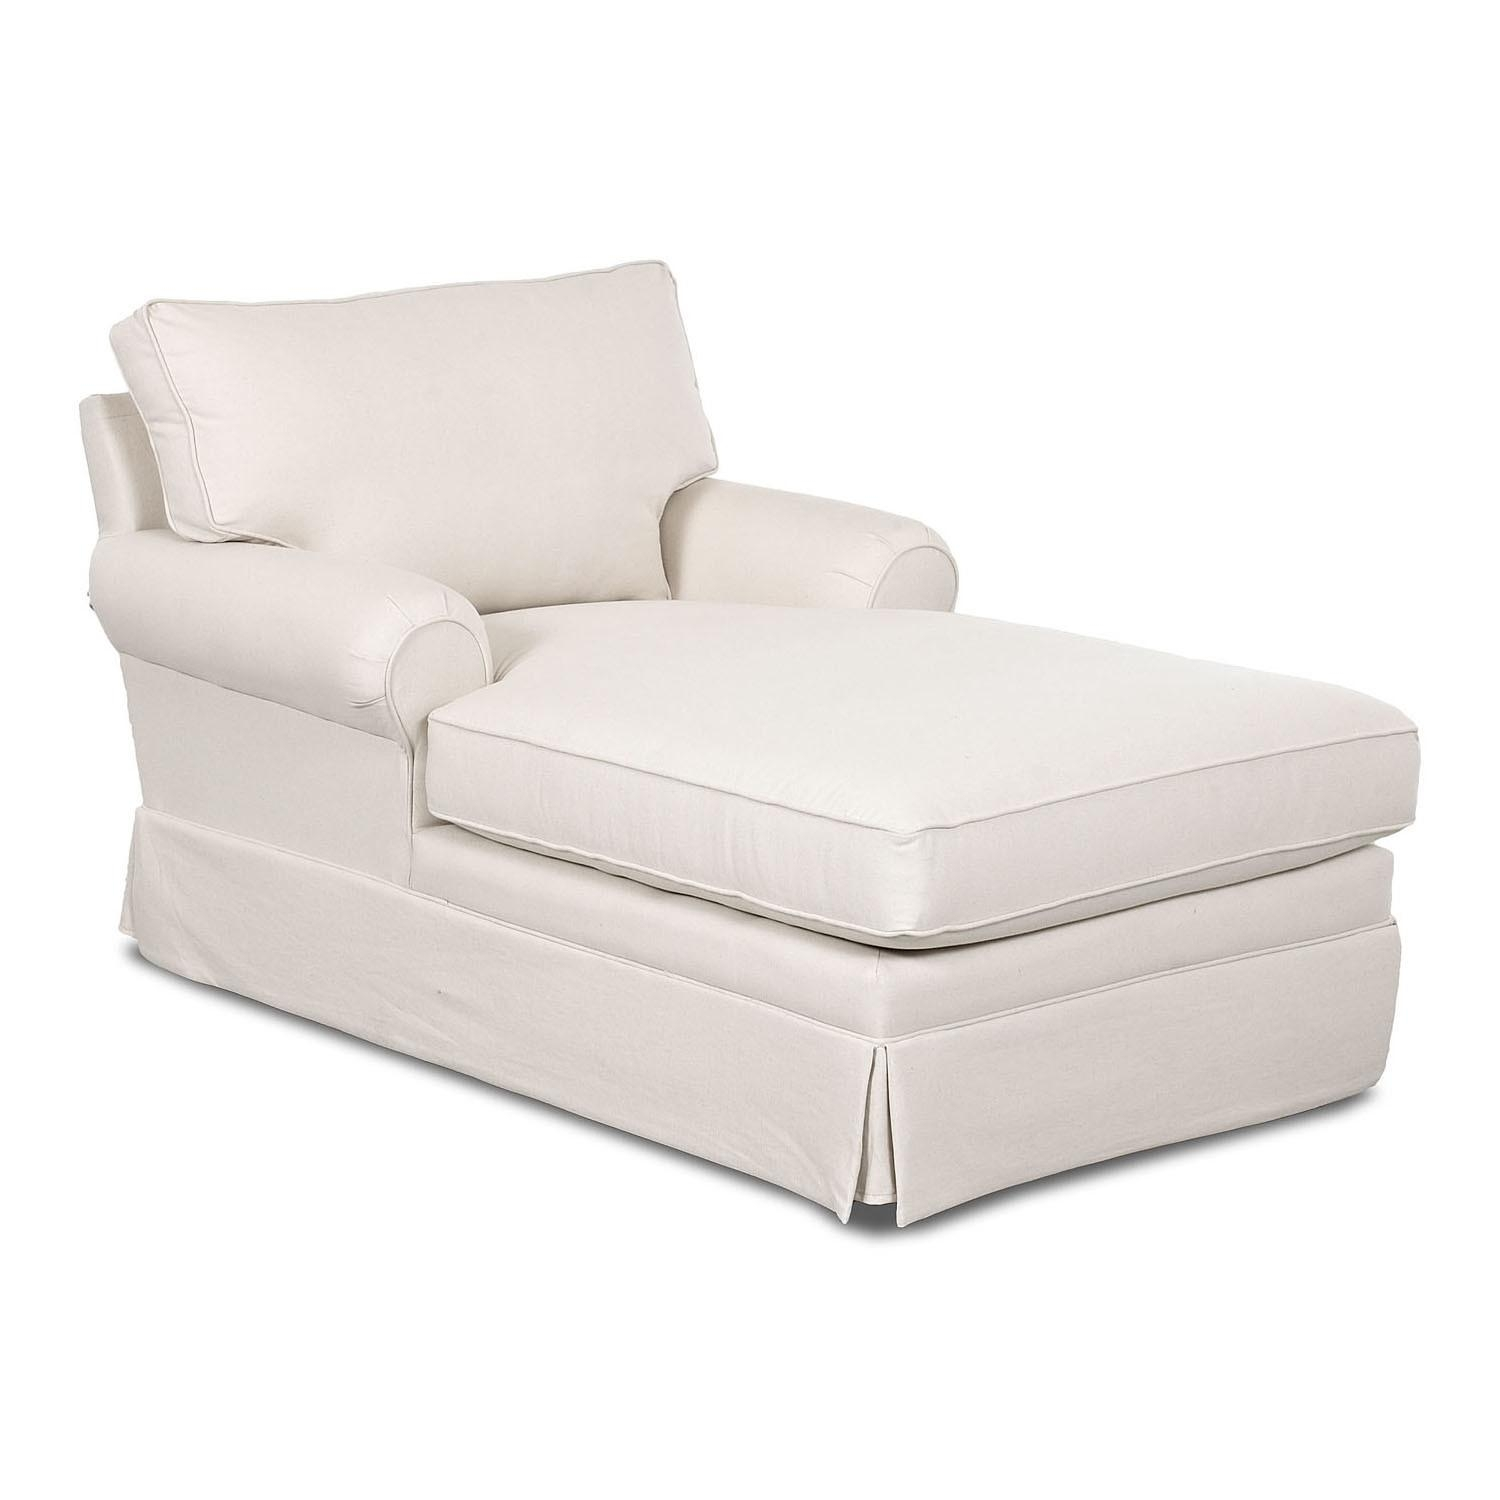 Chaise Lounge Slipcovers – Slipcovers For Chaise Lounge Chairs Pertaining To Slipcovers For Chaise Lounge Sofas (Image 3 of 20)